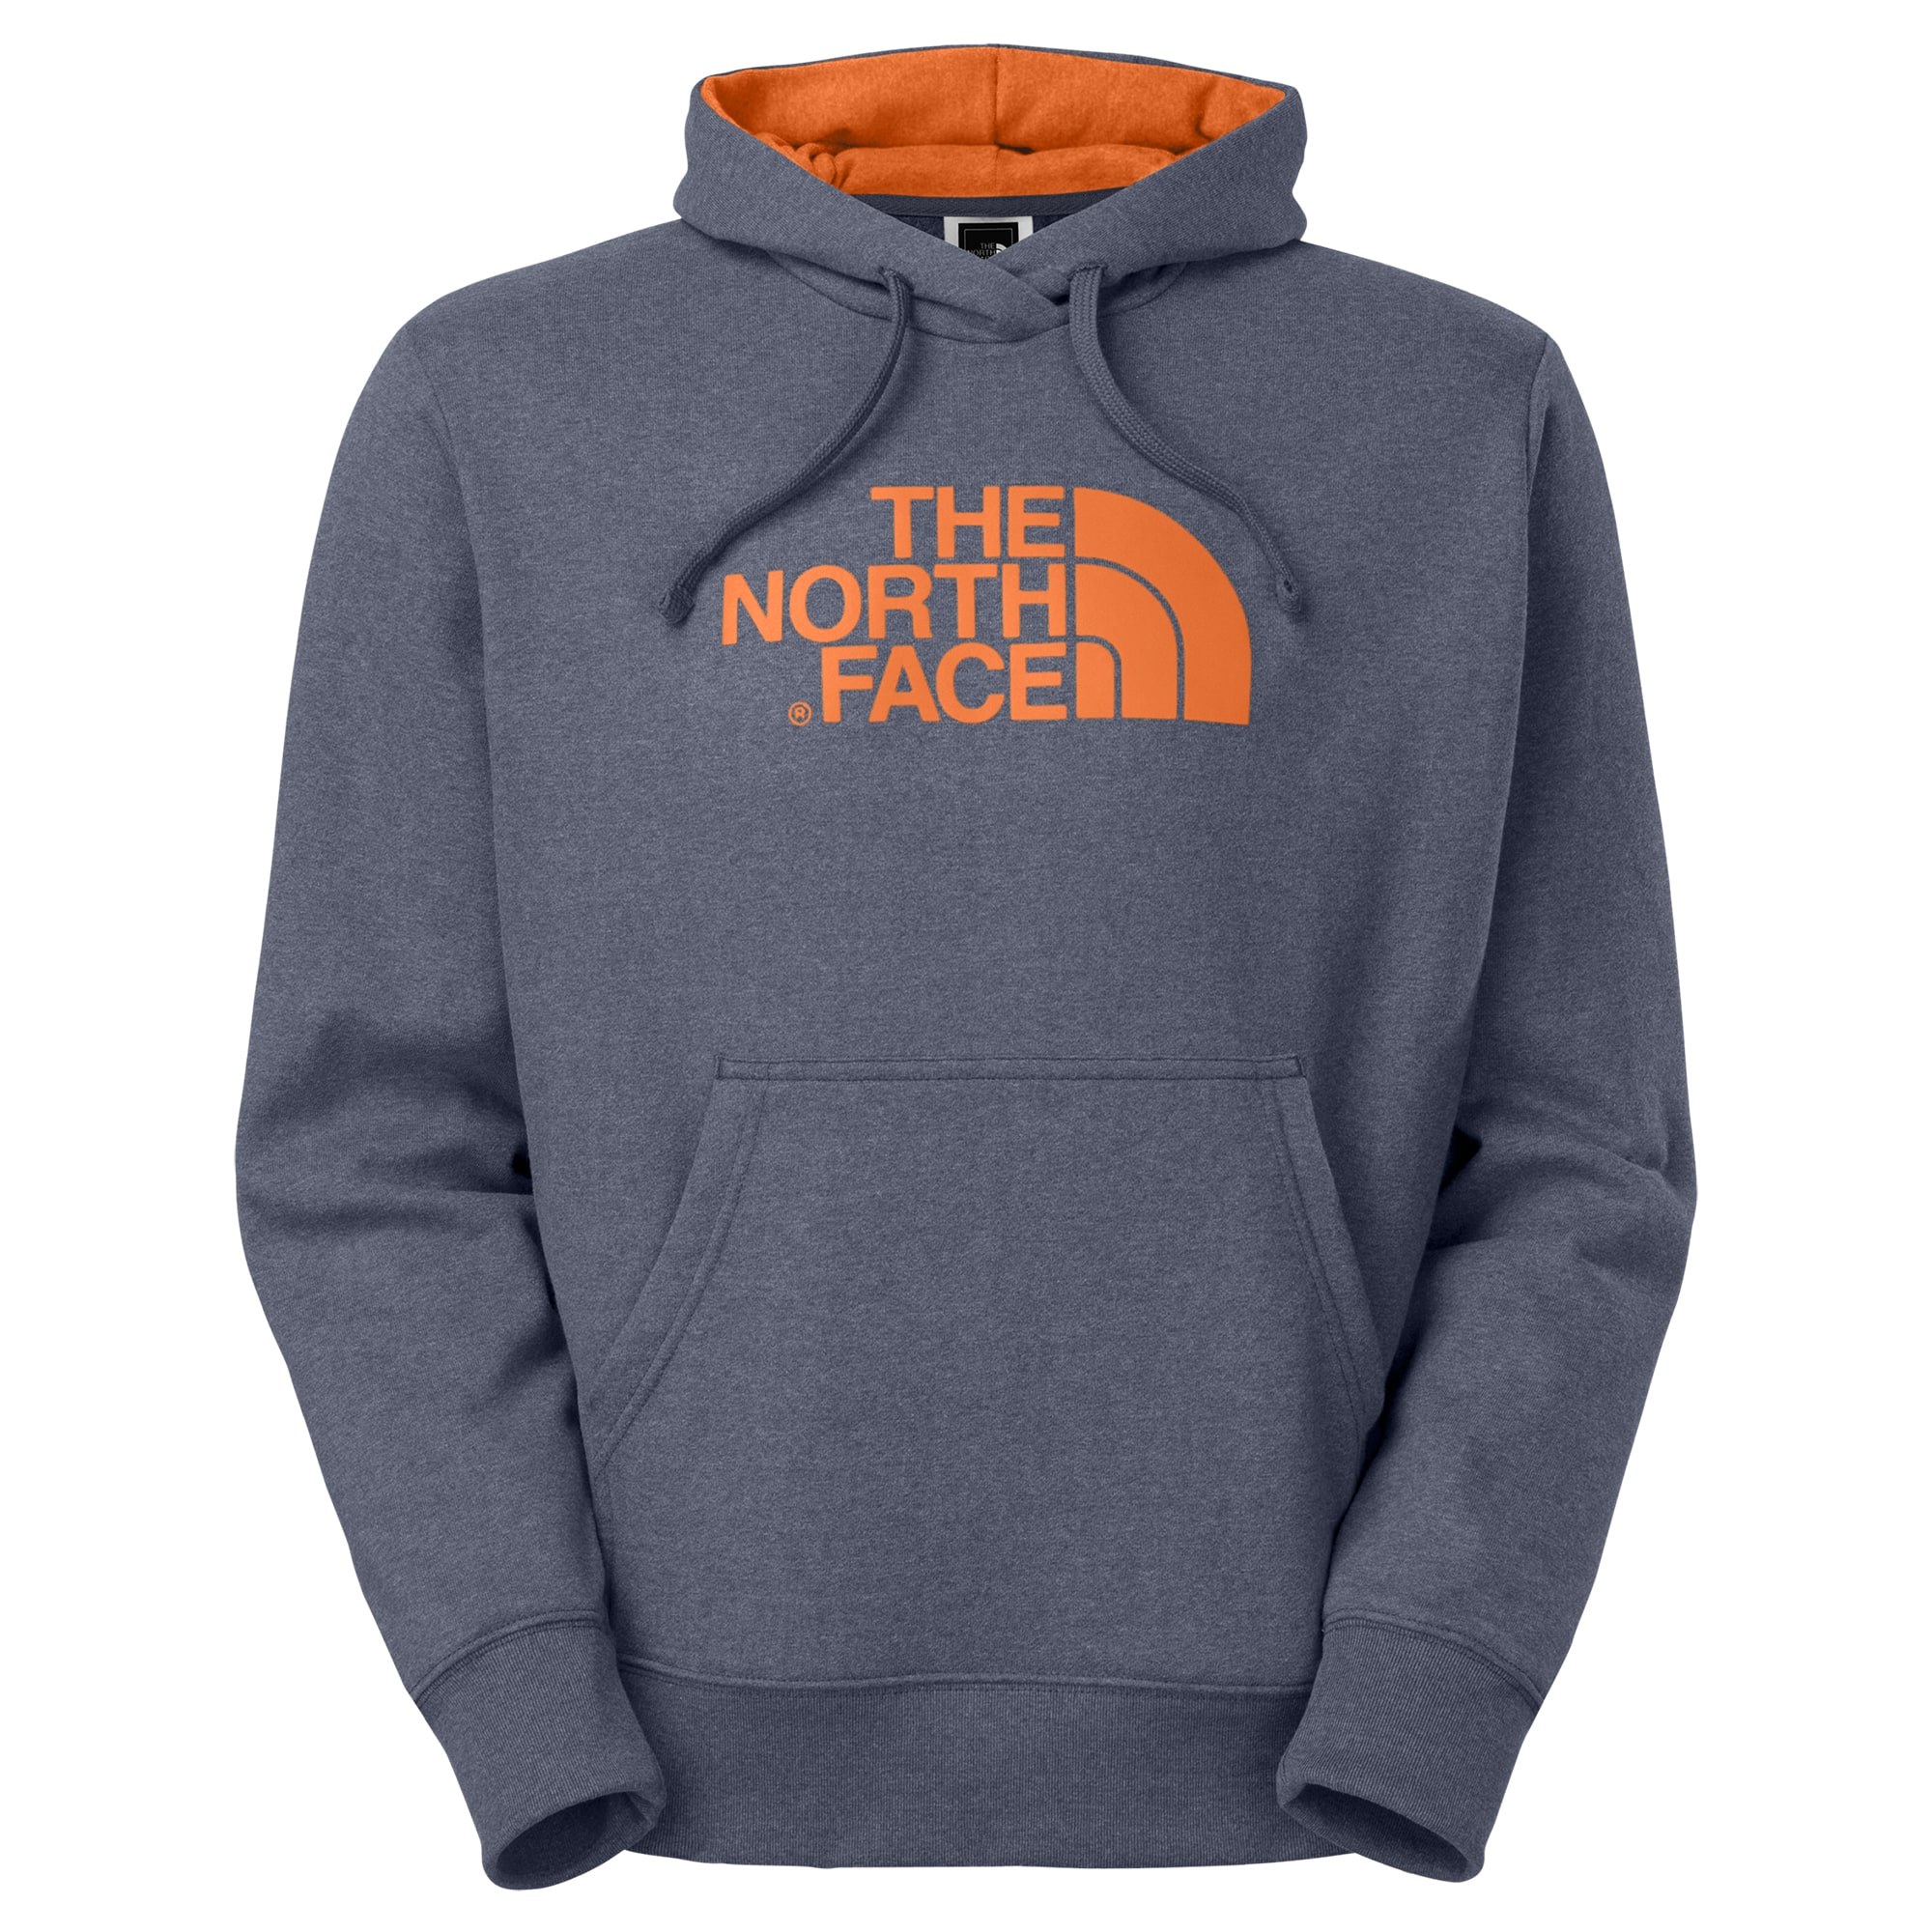 The North Face Half-Dome Men's Hoodies $30 + Free Shipping